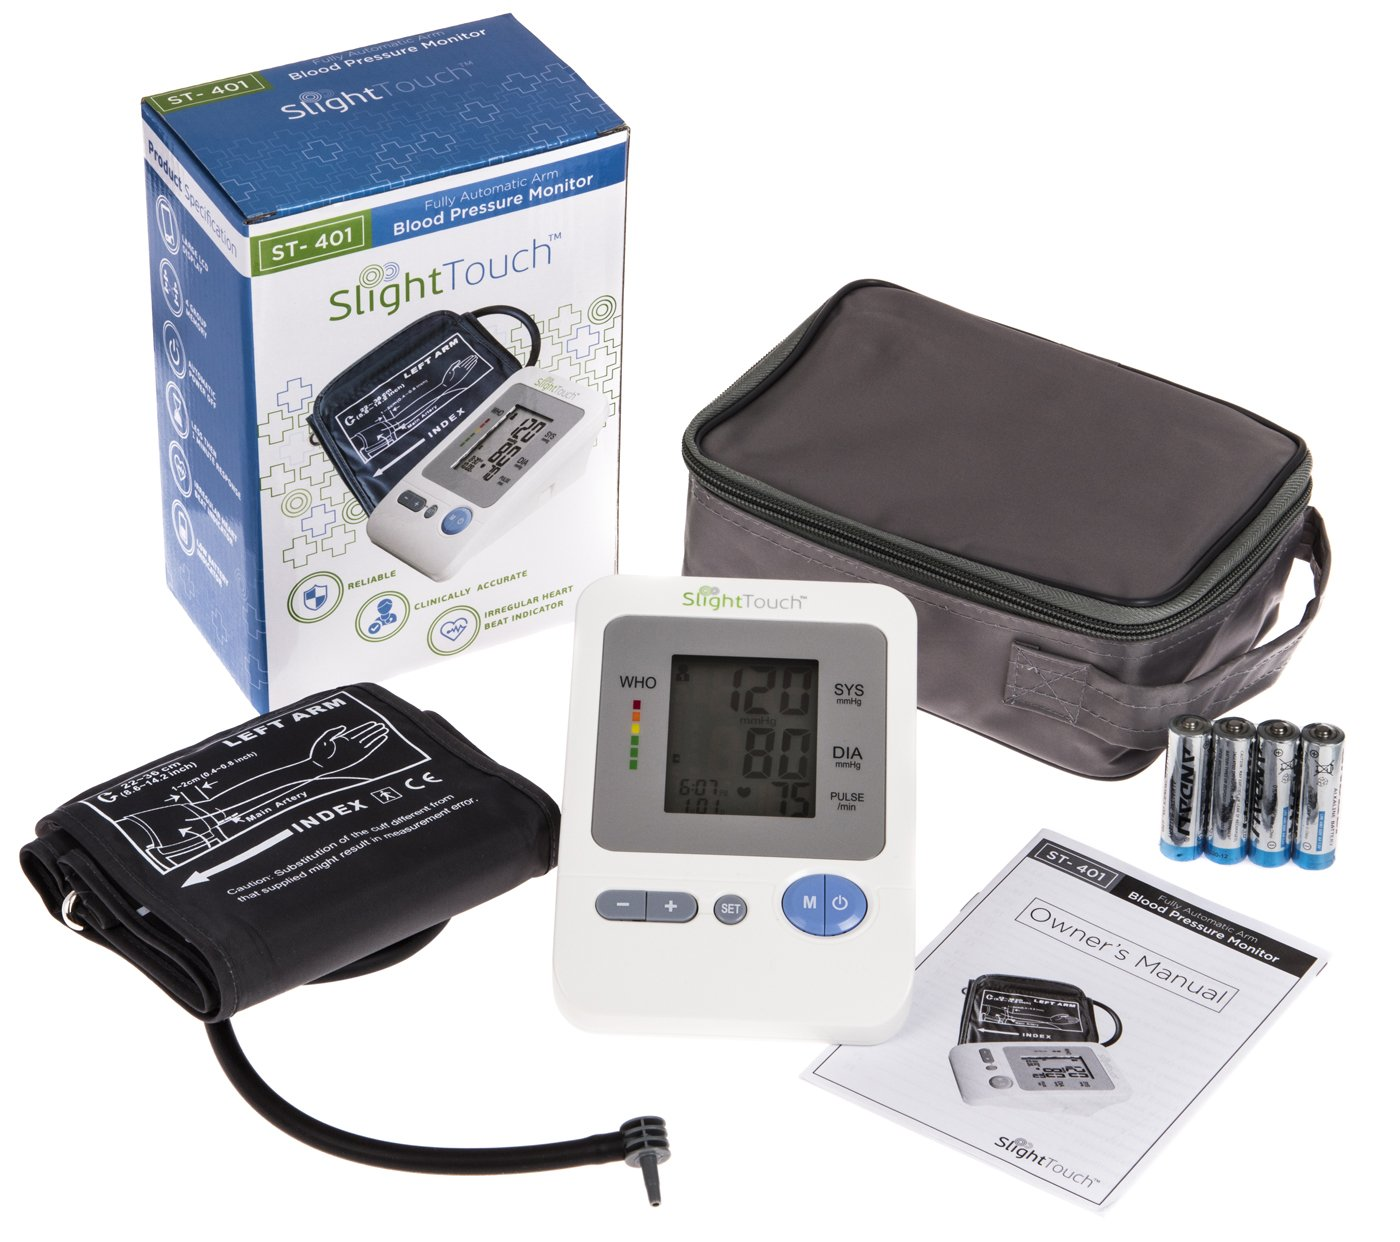 Slight Touch FDA Approved Fully Automatic Upper Arm Blood Pressure Monitor Large Cuff 11.8 -16.5 ST-402 Batteries and Case Included